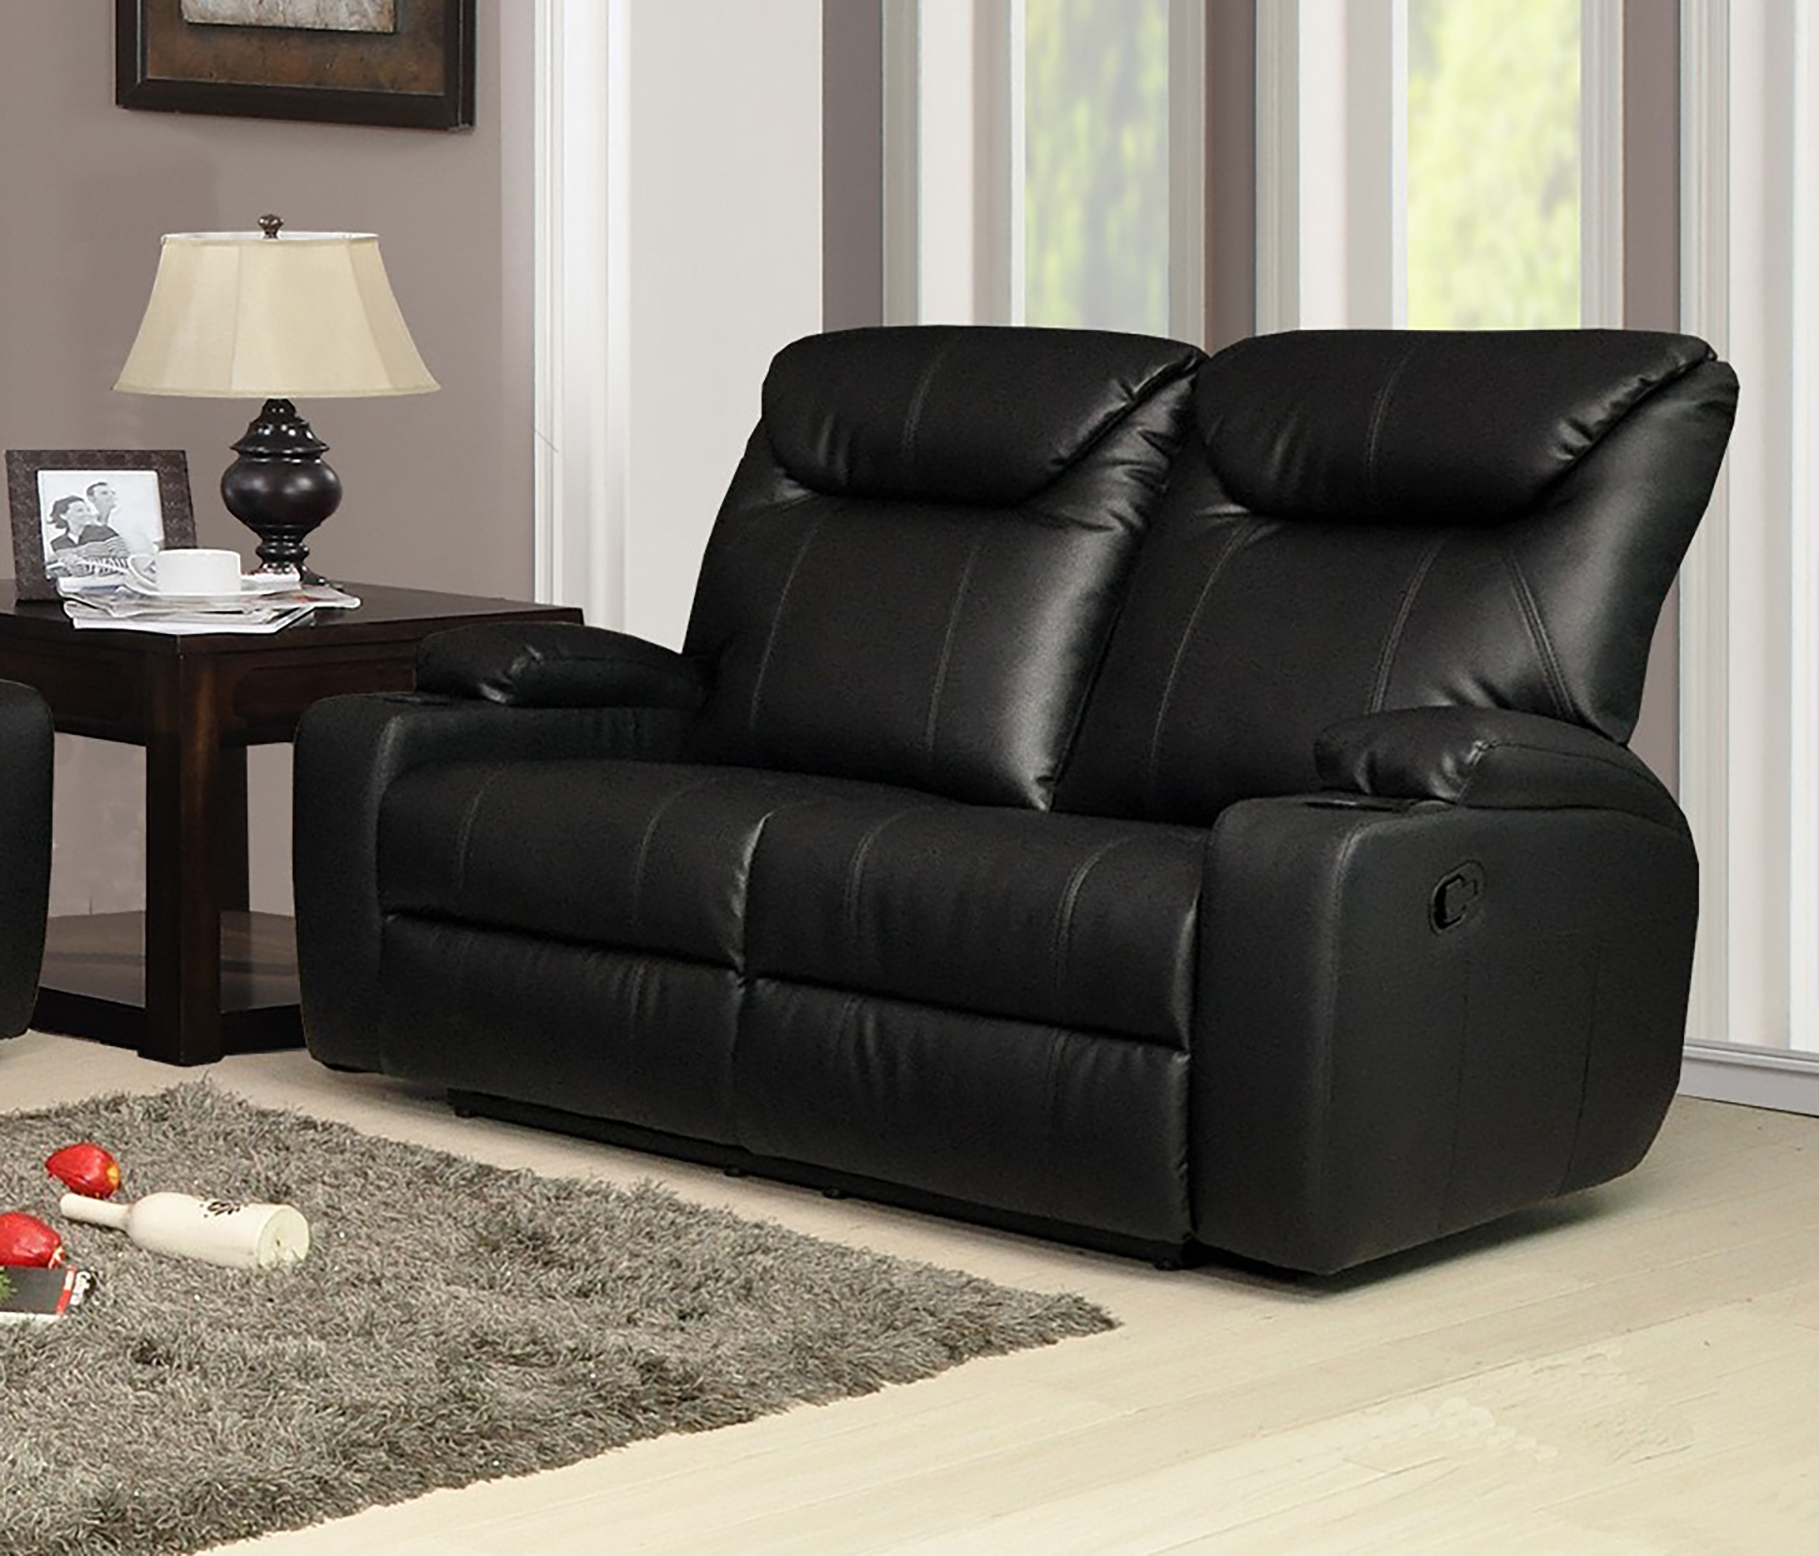 New luxury cinema lazy boy 2 seater bonded leather Leather lazy boy sofa